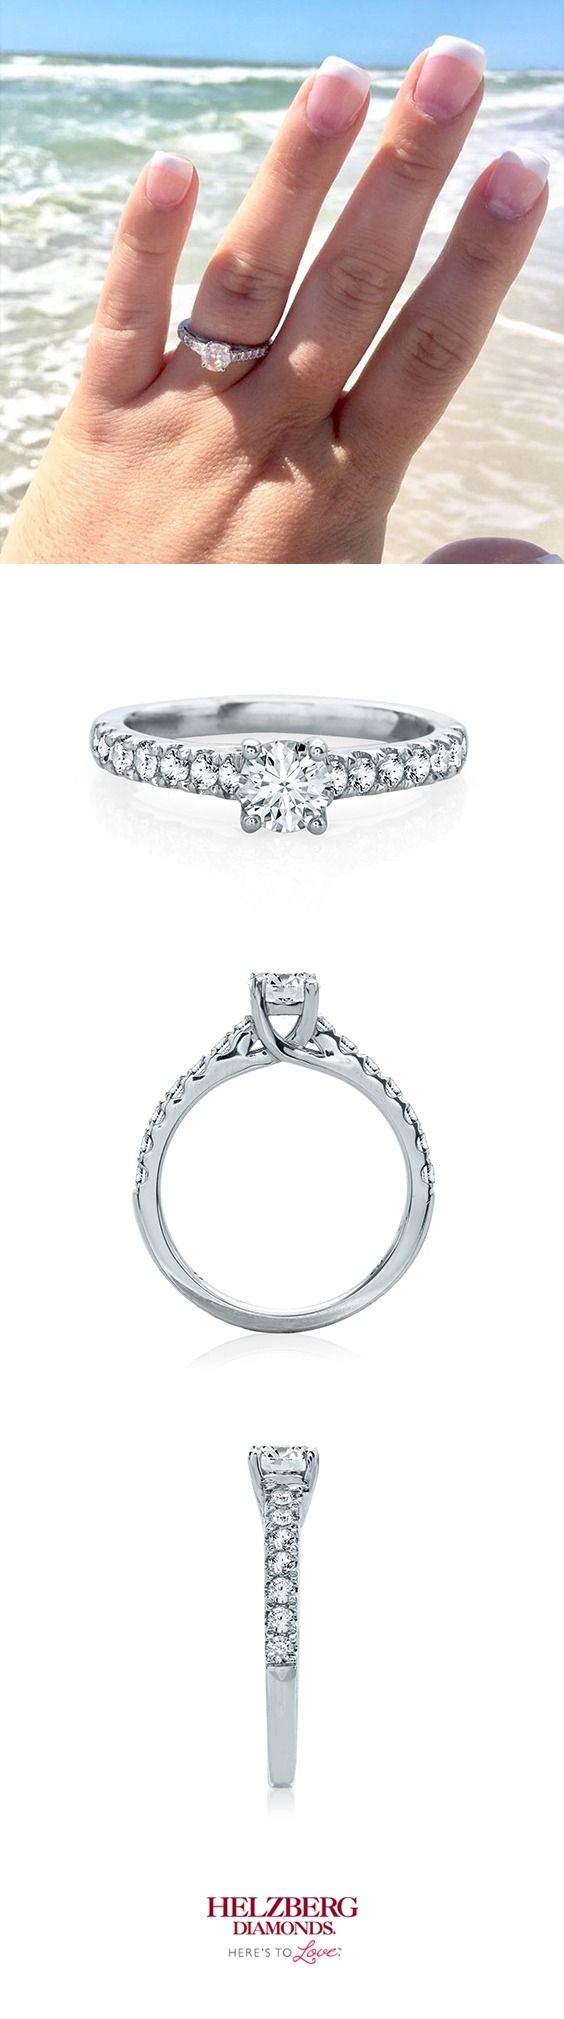 Helzberg Diamond Masterpiece® 1 Ct Tw Diamond Engagement Ring In 18k  White Gold